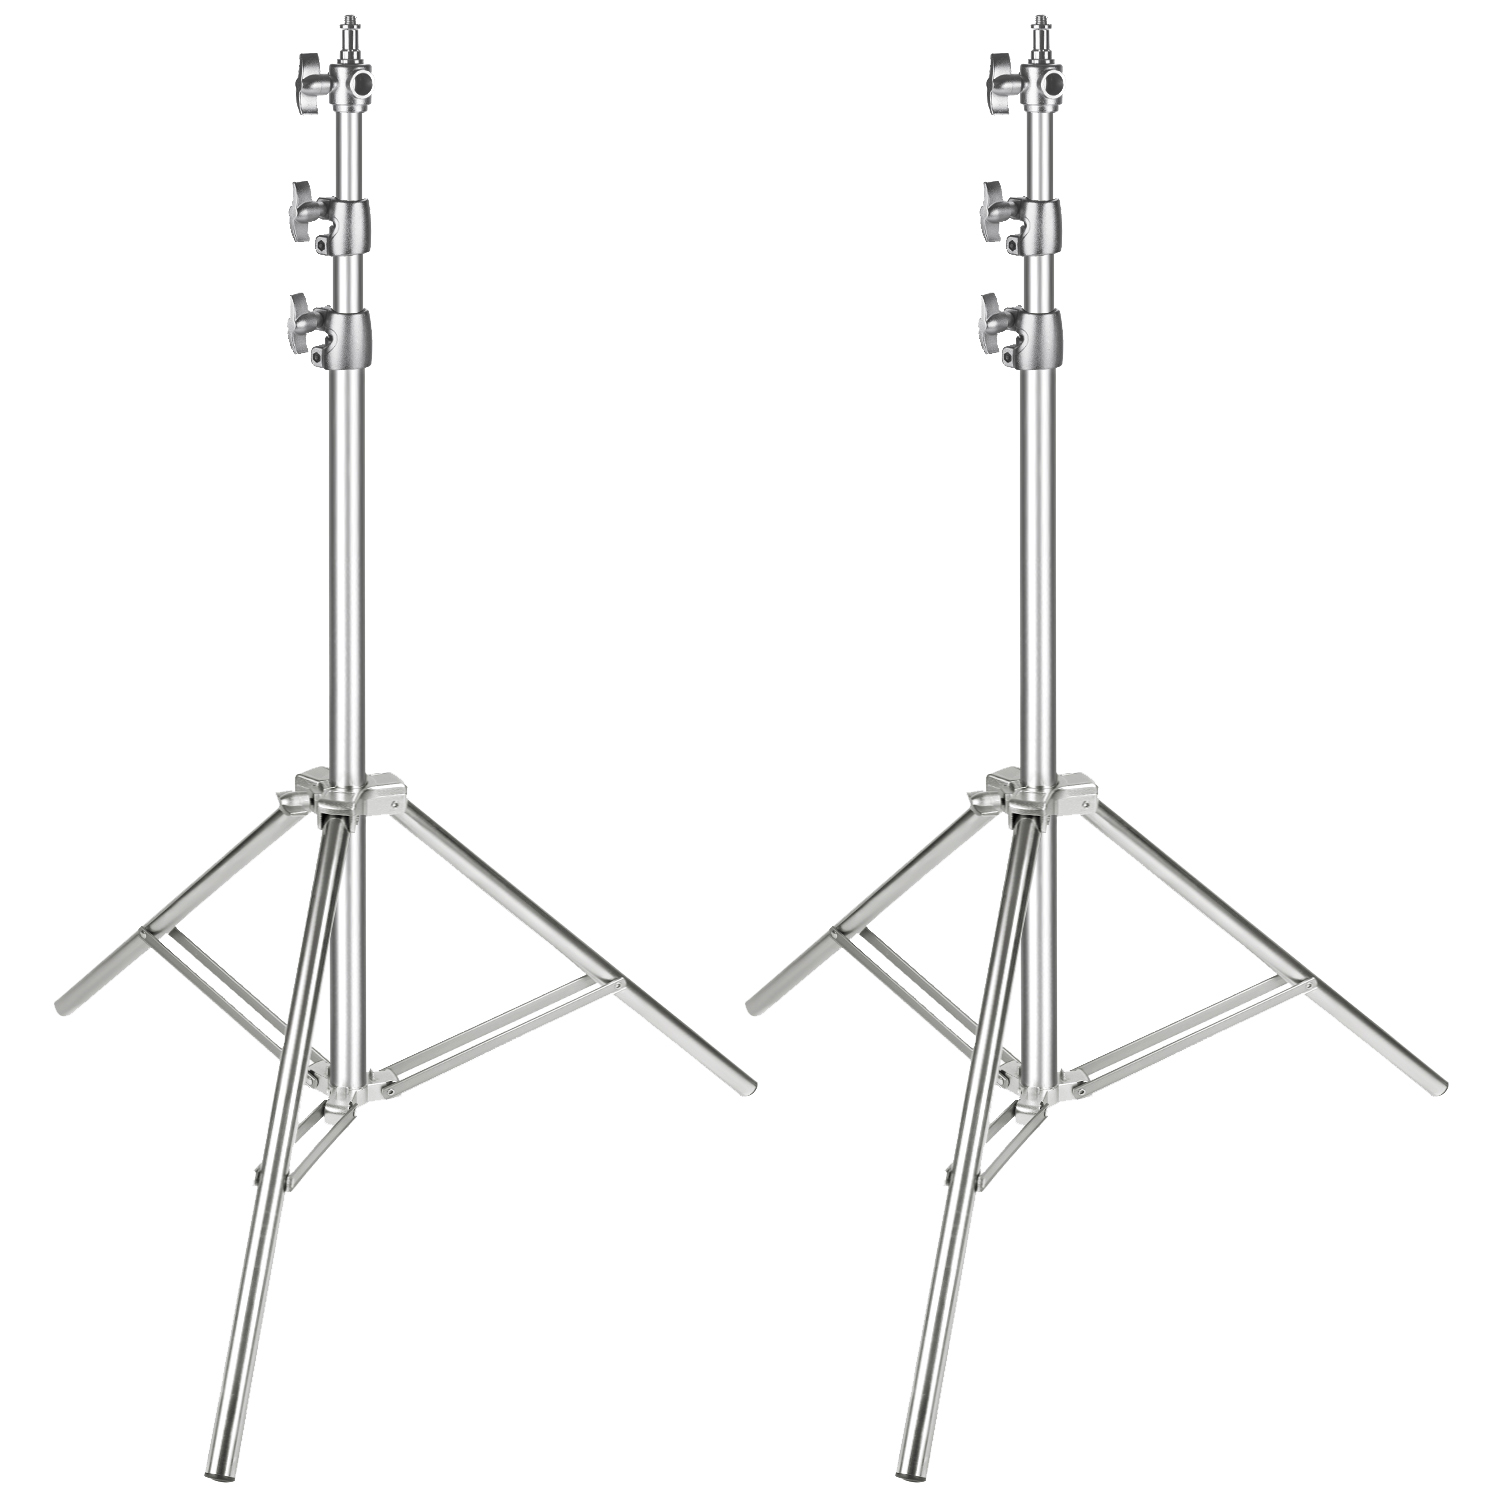 Neewer Stainless Steel Light Stand Silver 86.6 inches Foldable and Portable Heavy Duty Stand for Studio Softbox Monolight